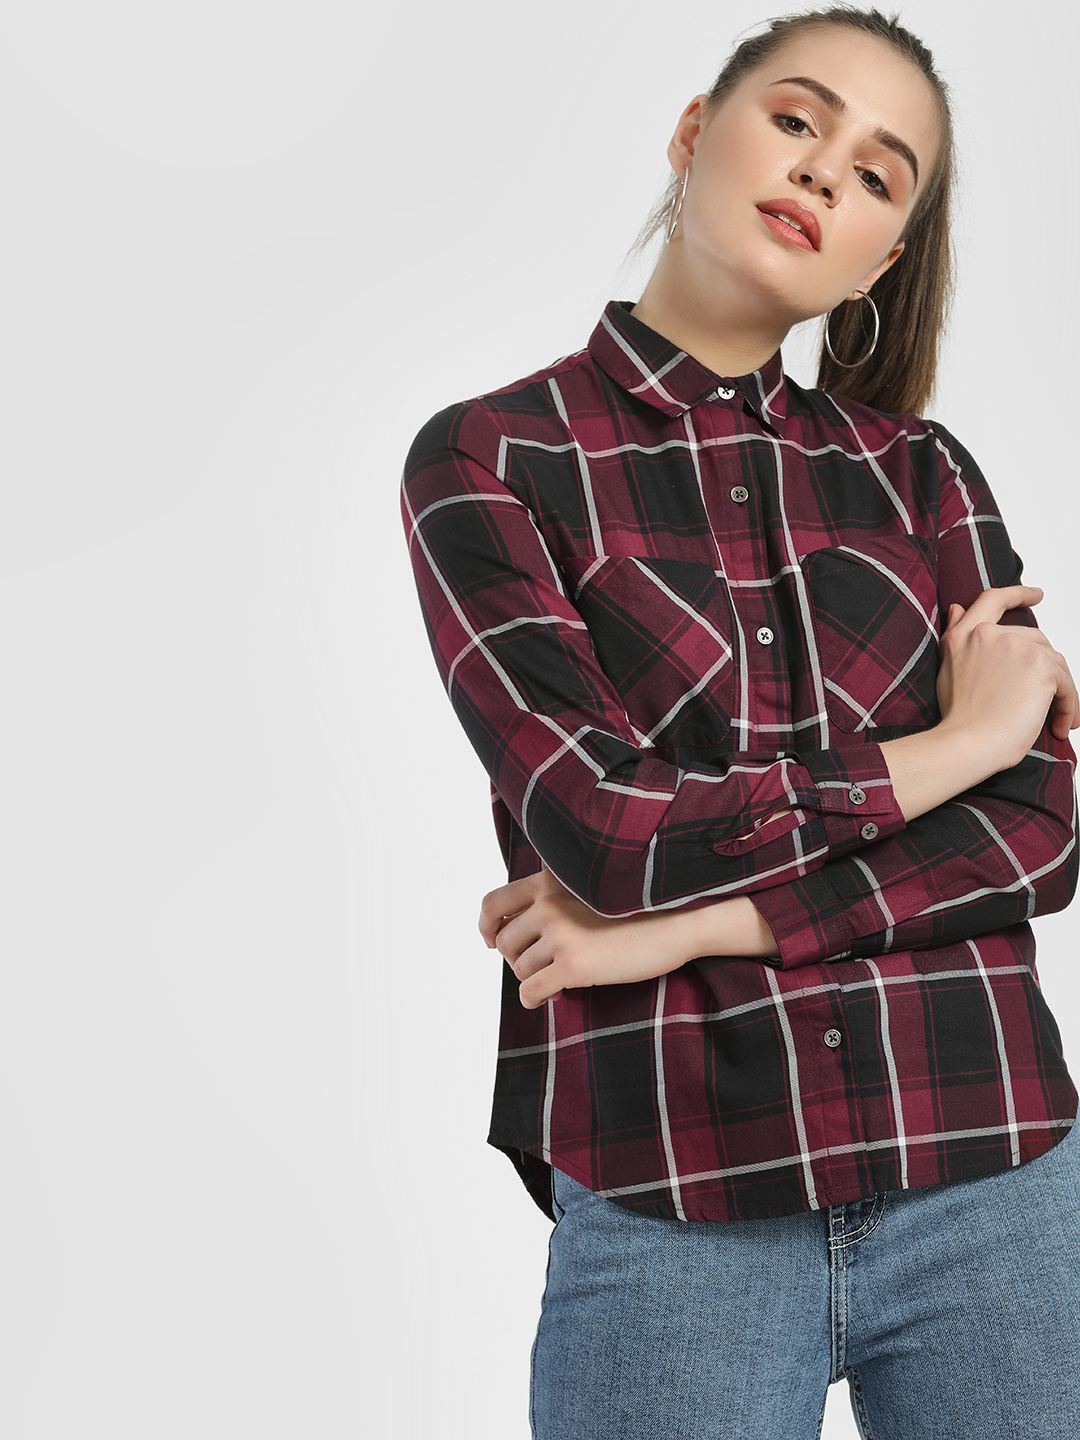 Disrupt Multi Multi Check Casual Shirt 1